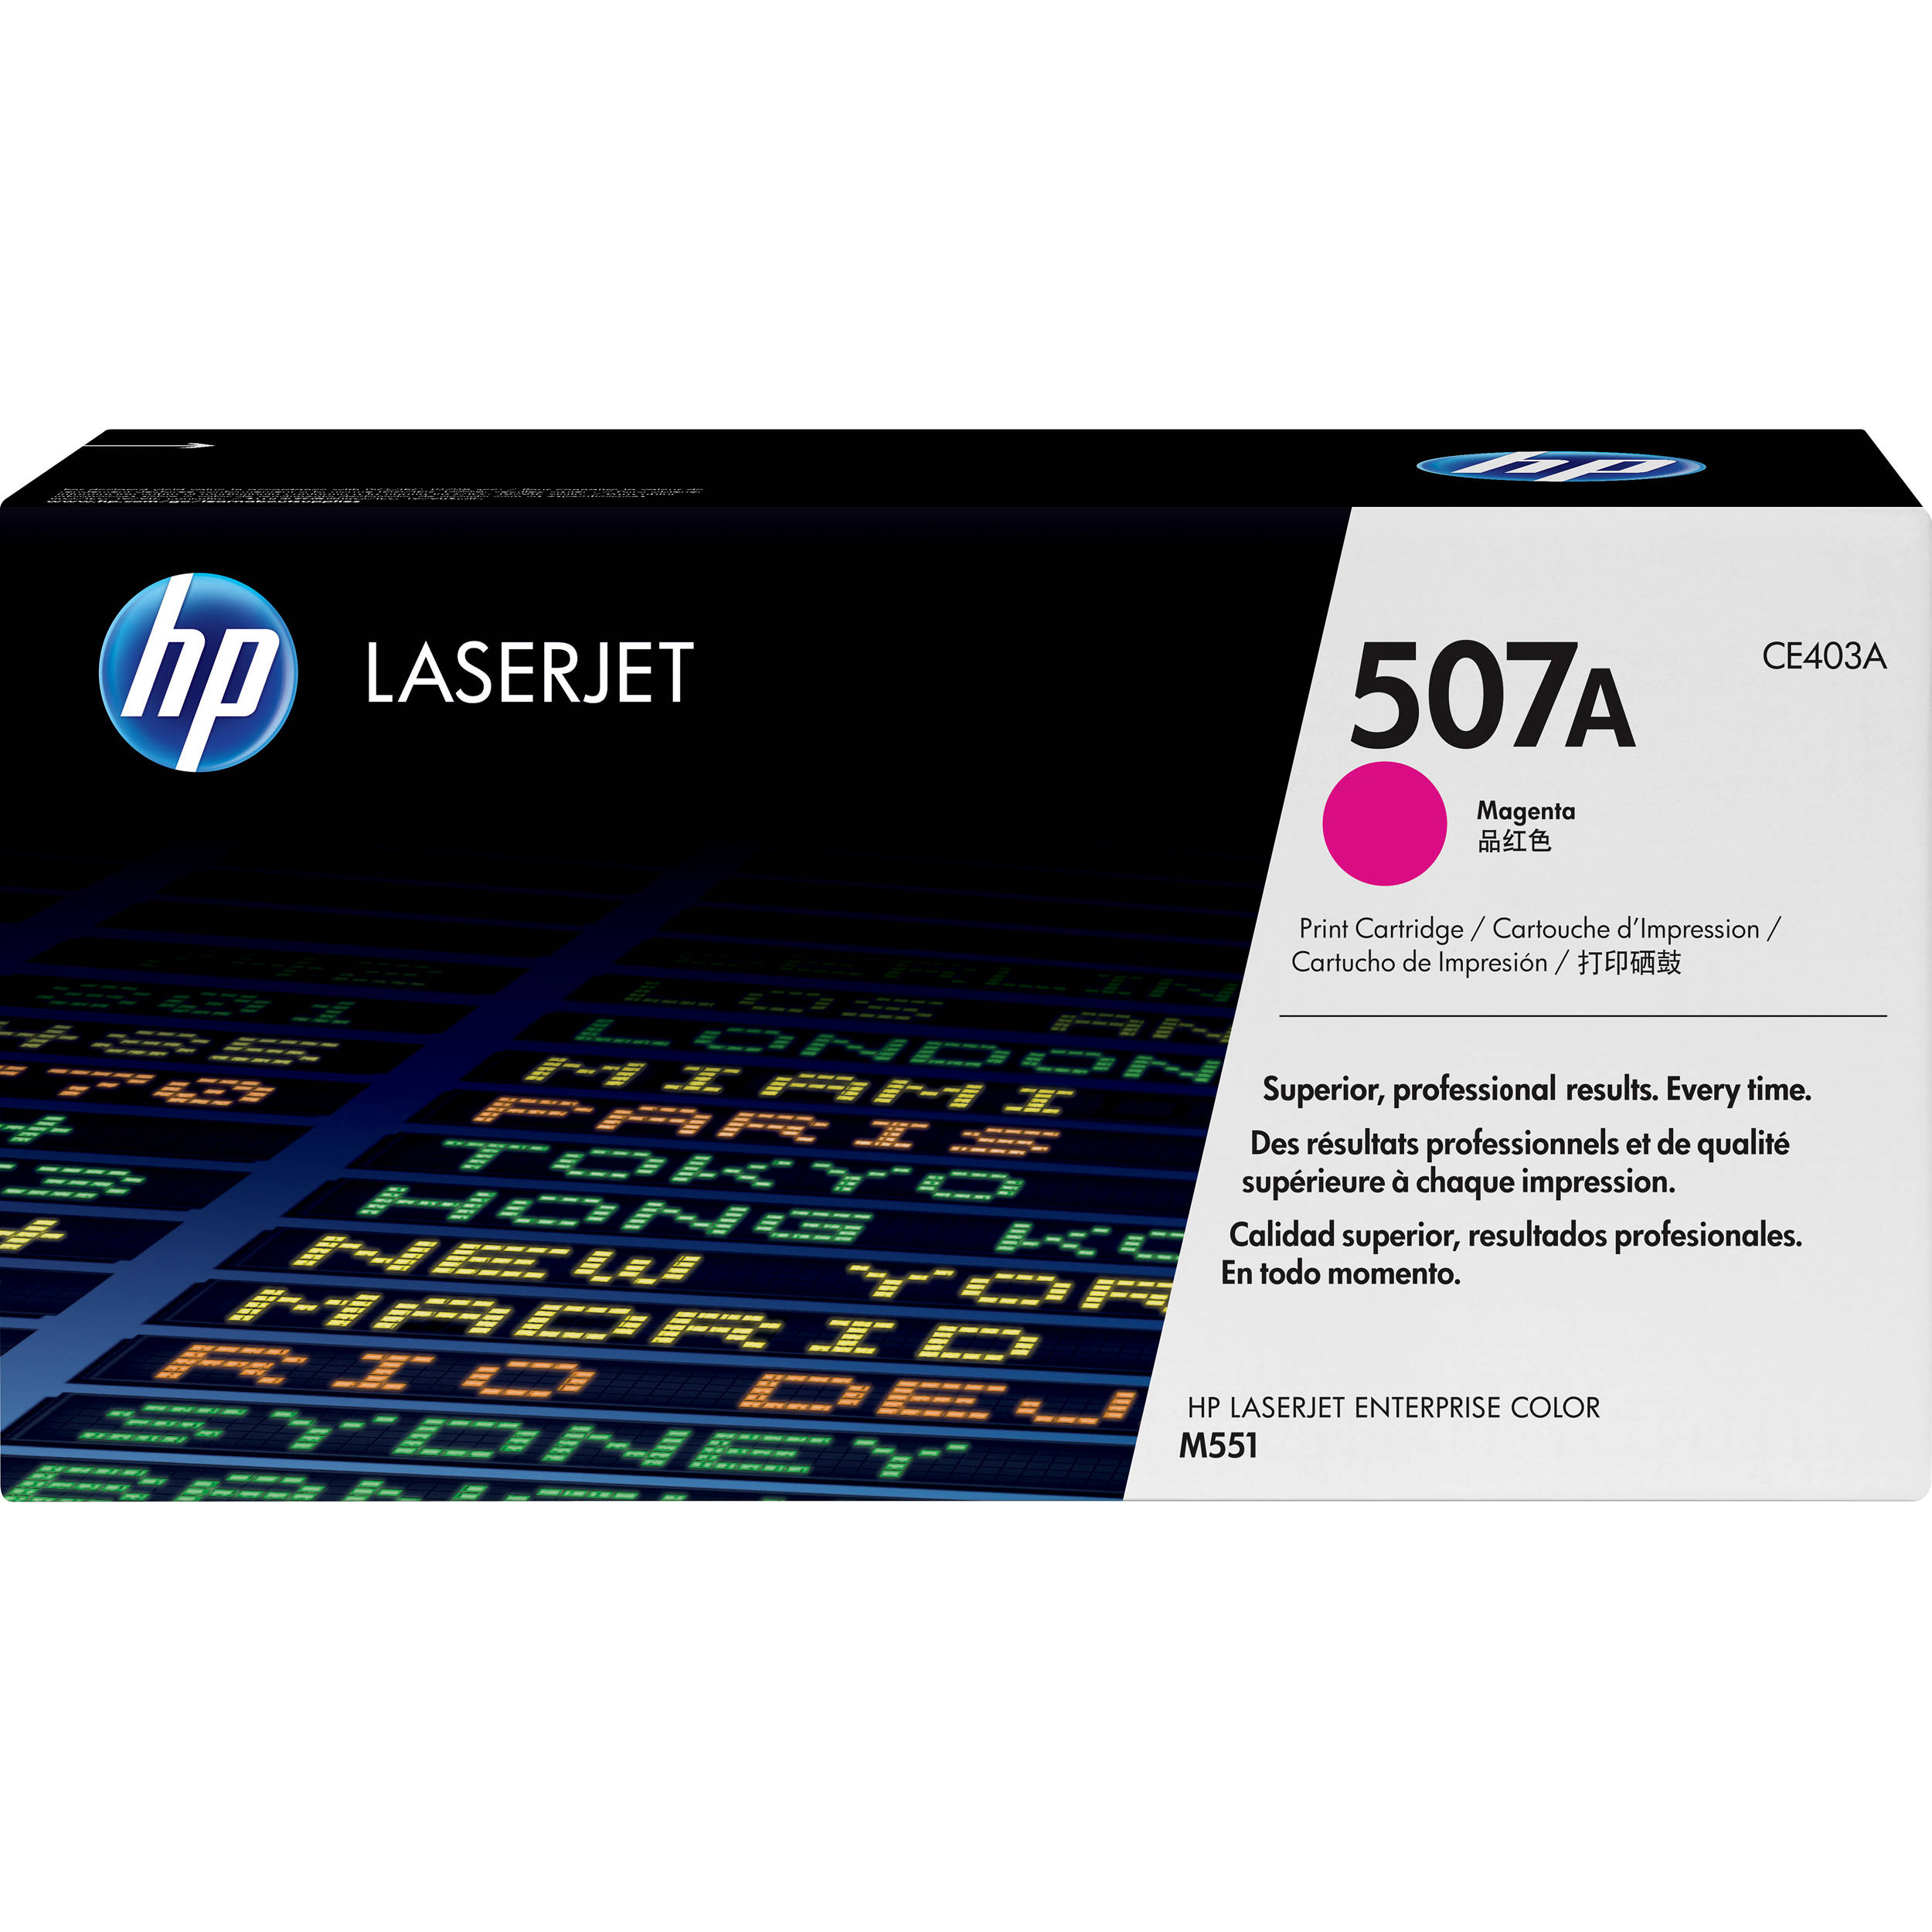 HP 507A Magenta Toner Cartridge (CE403A)